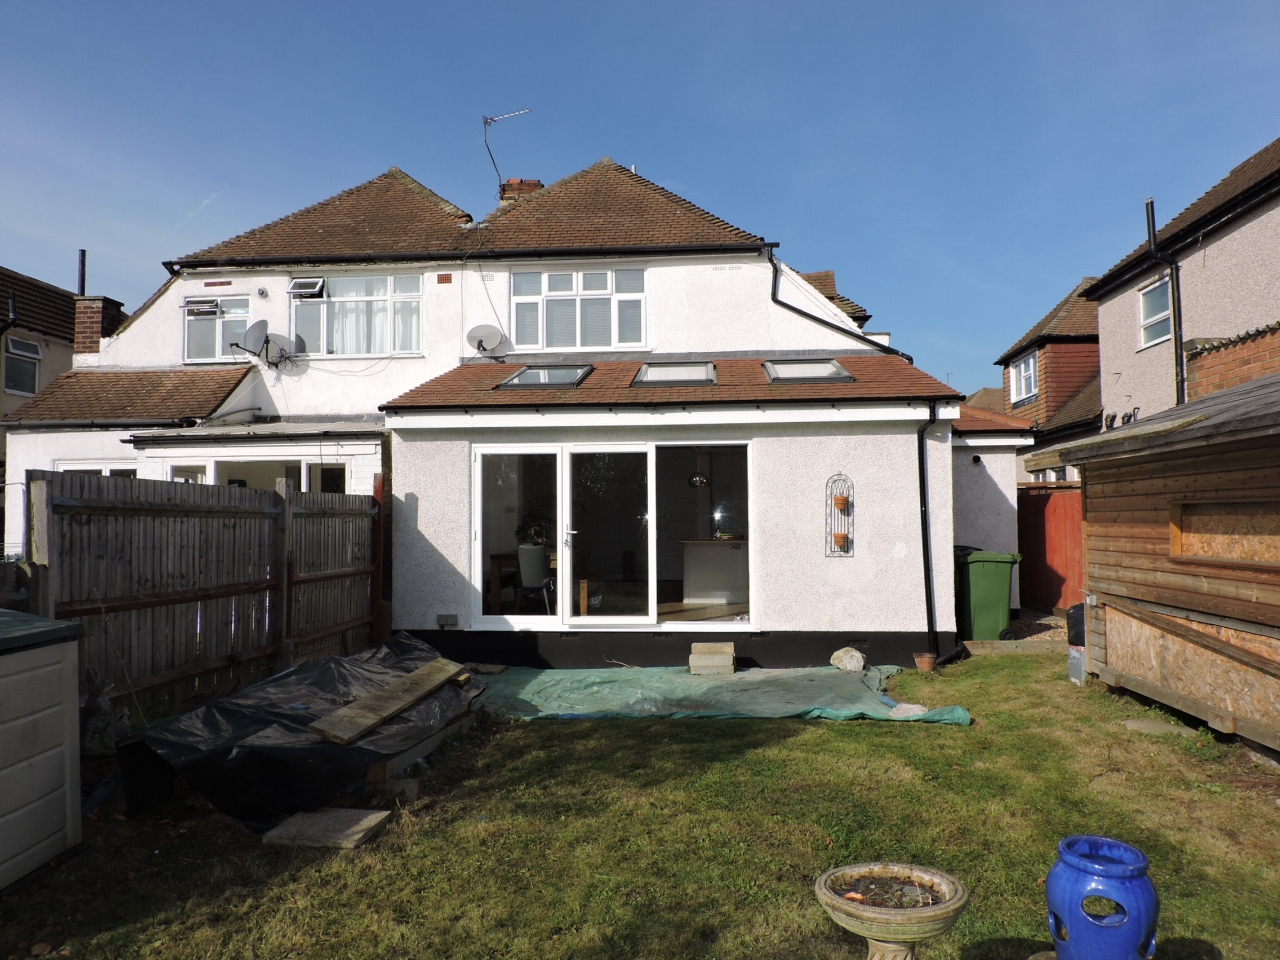 3 bedroom semi-detached house SSTC in New Malden - Photograph 18